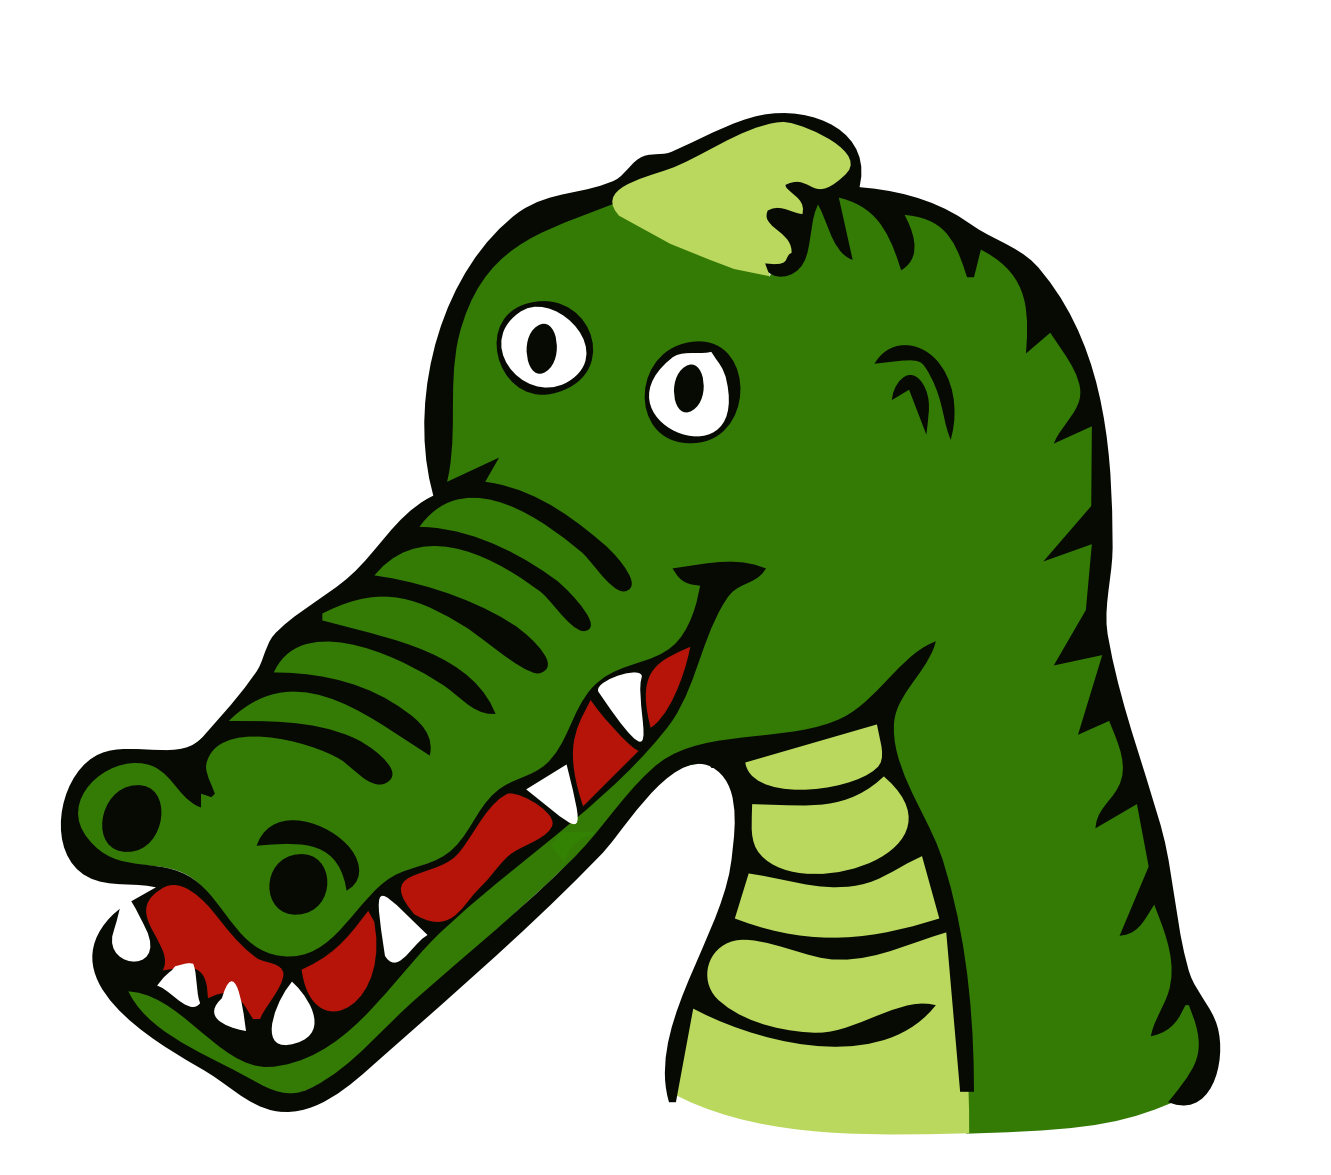 Mouth clipart alligator. Black and white images